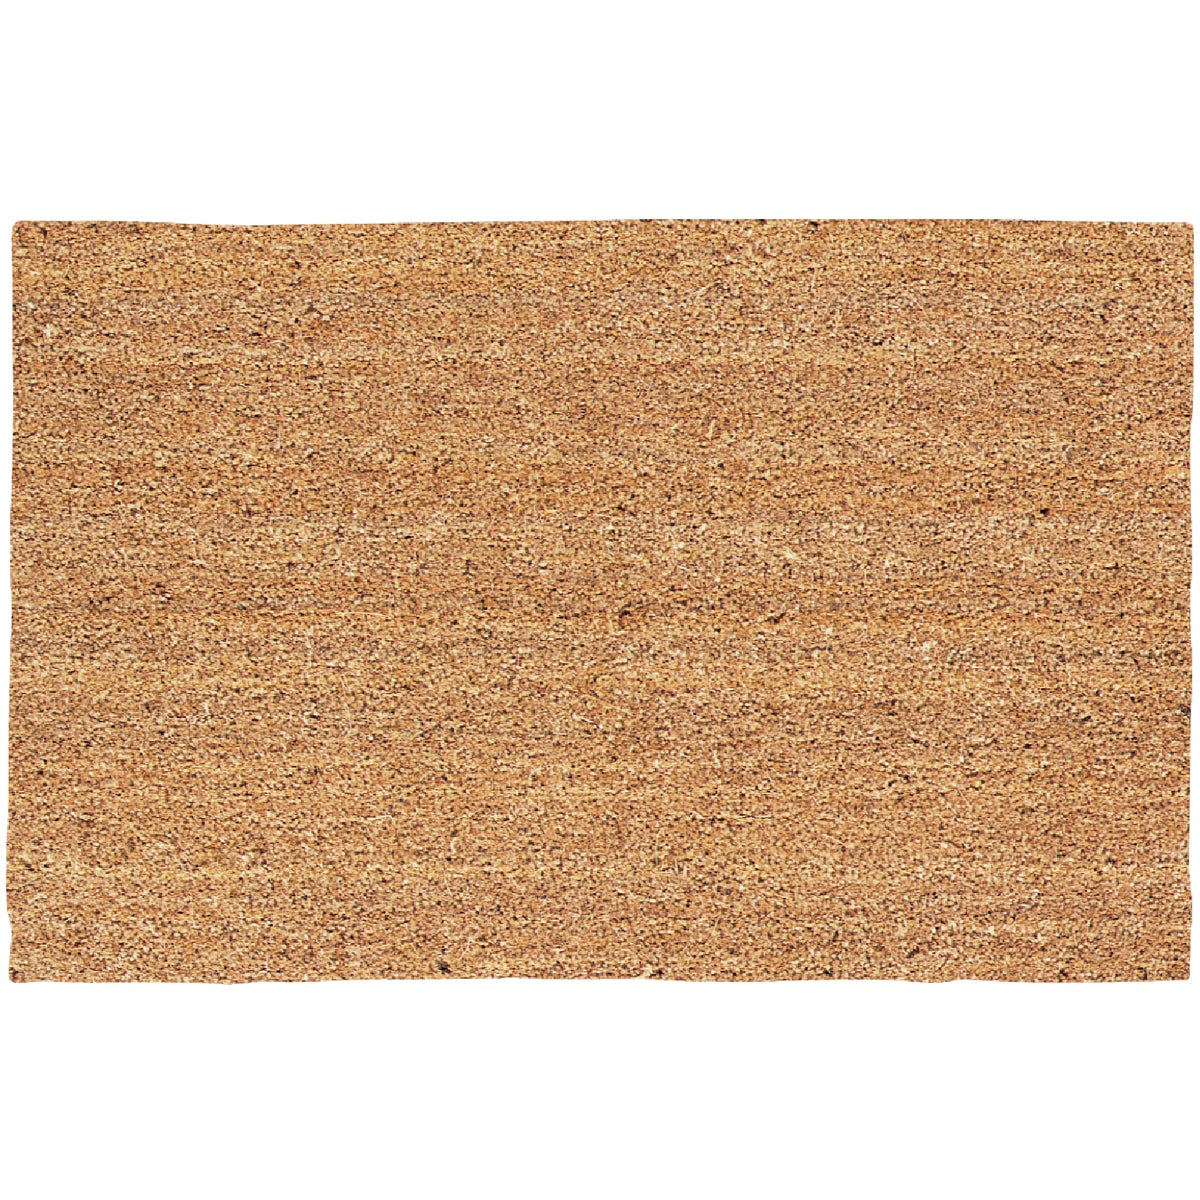 NATURAL TAN DOORMAT - 31562 by Uscoa Llc